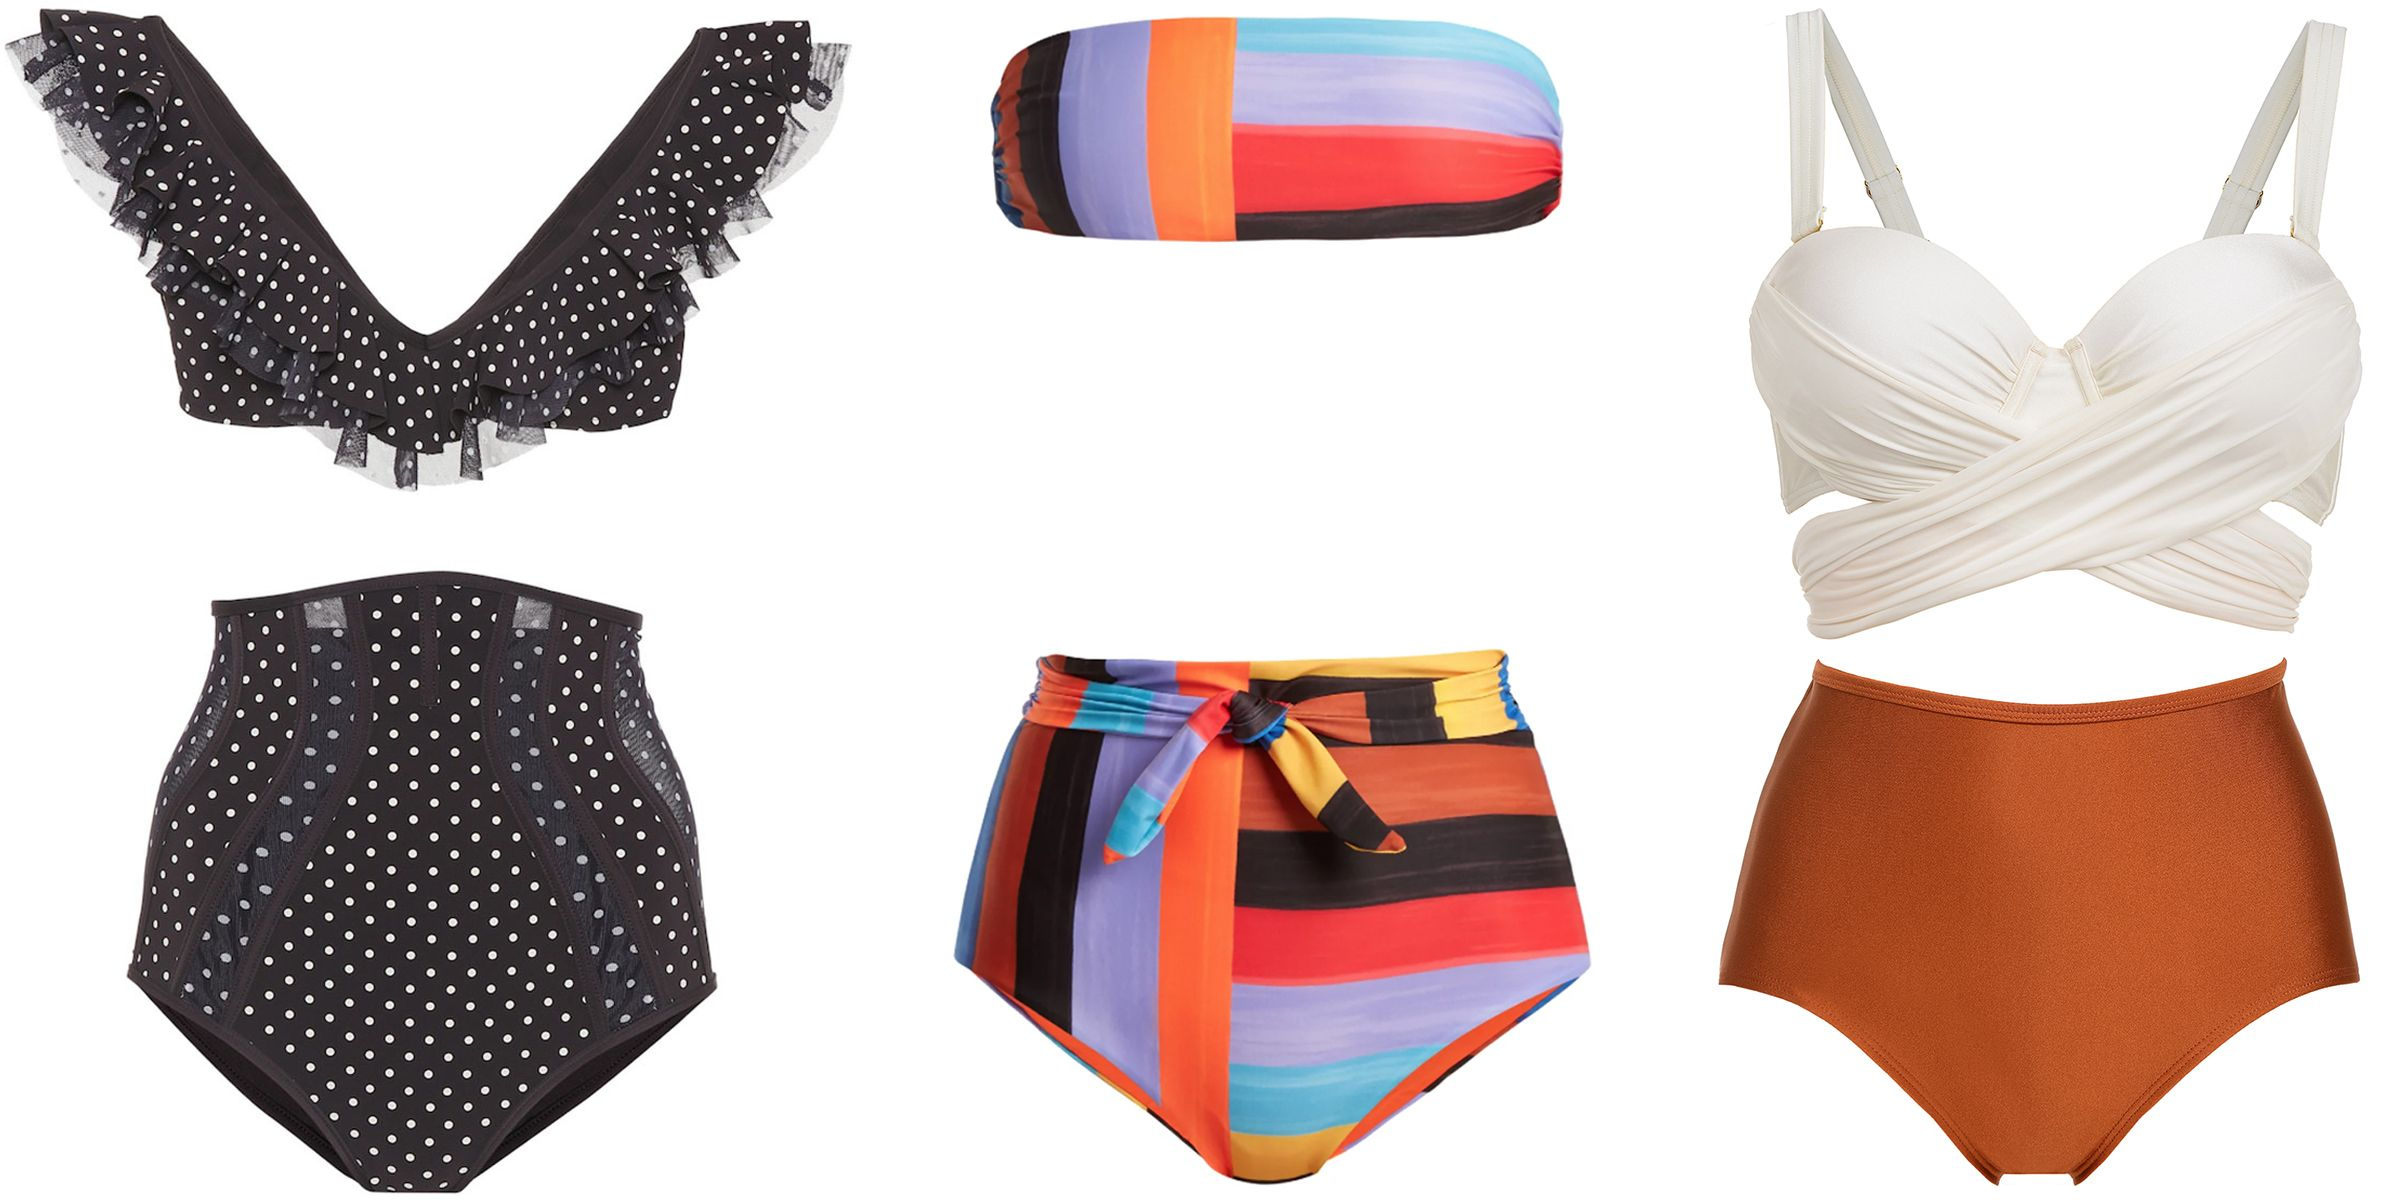 The Sexiest High-Waisted Bikinis For Your Next Beach Getaway